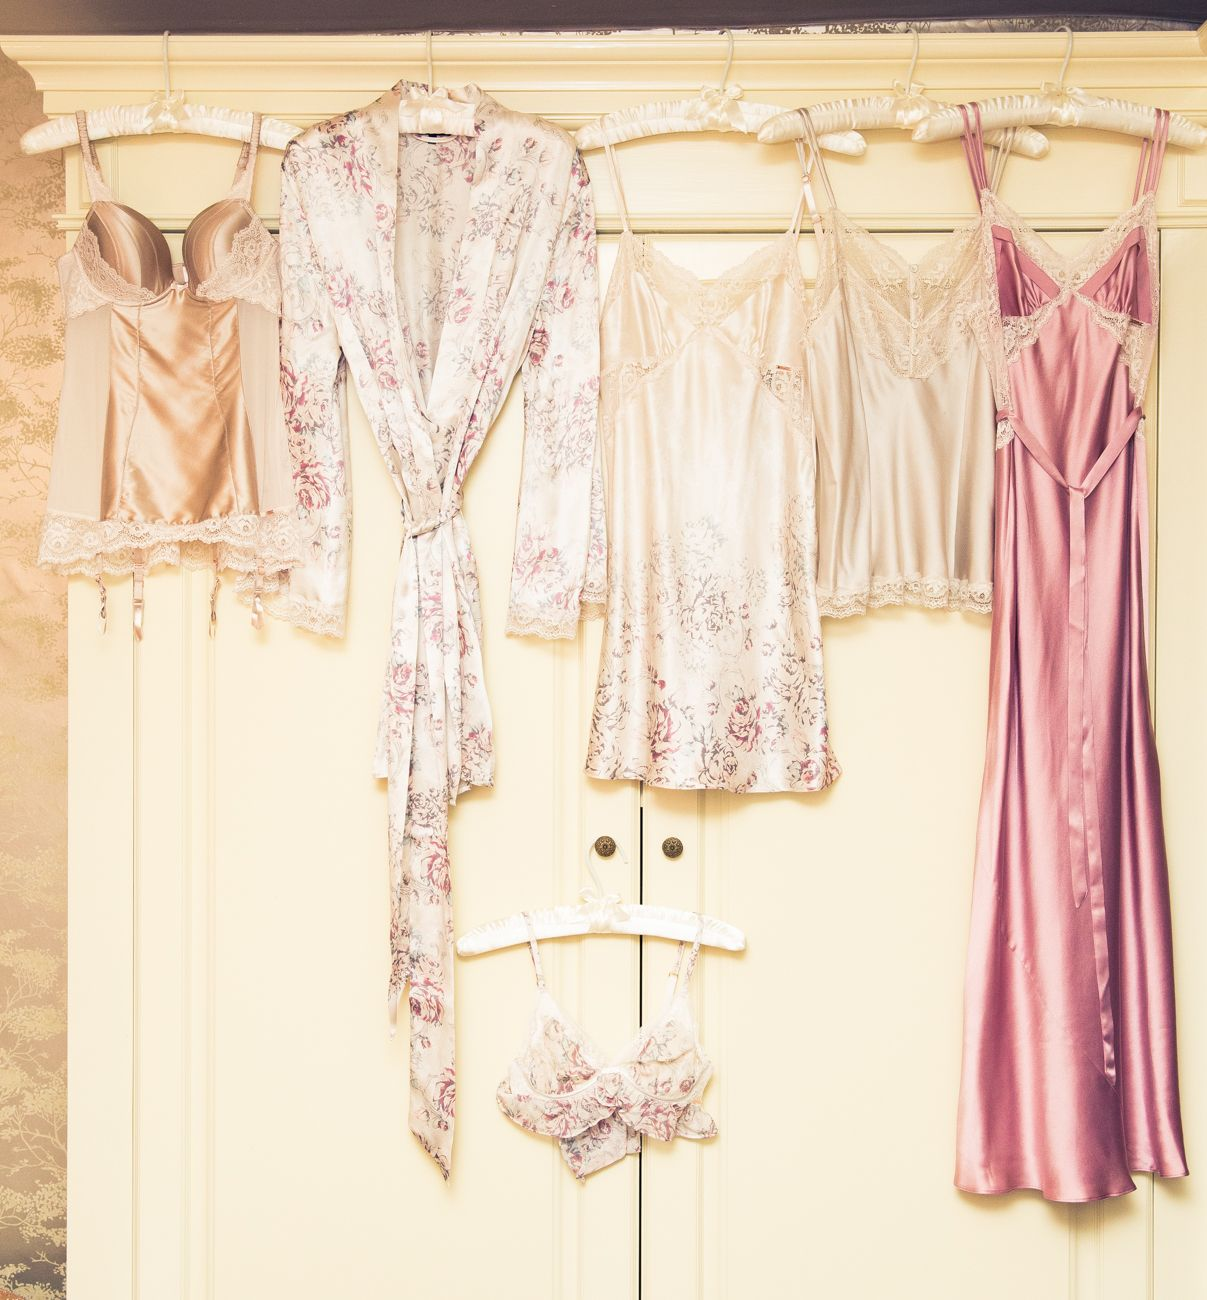 satin & lace | via The Coveteur